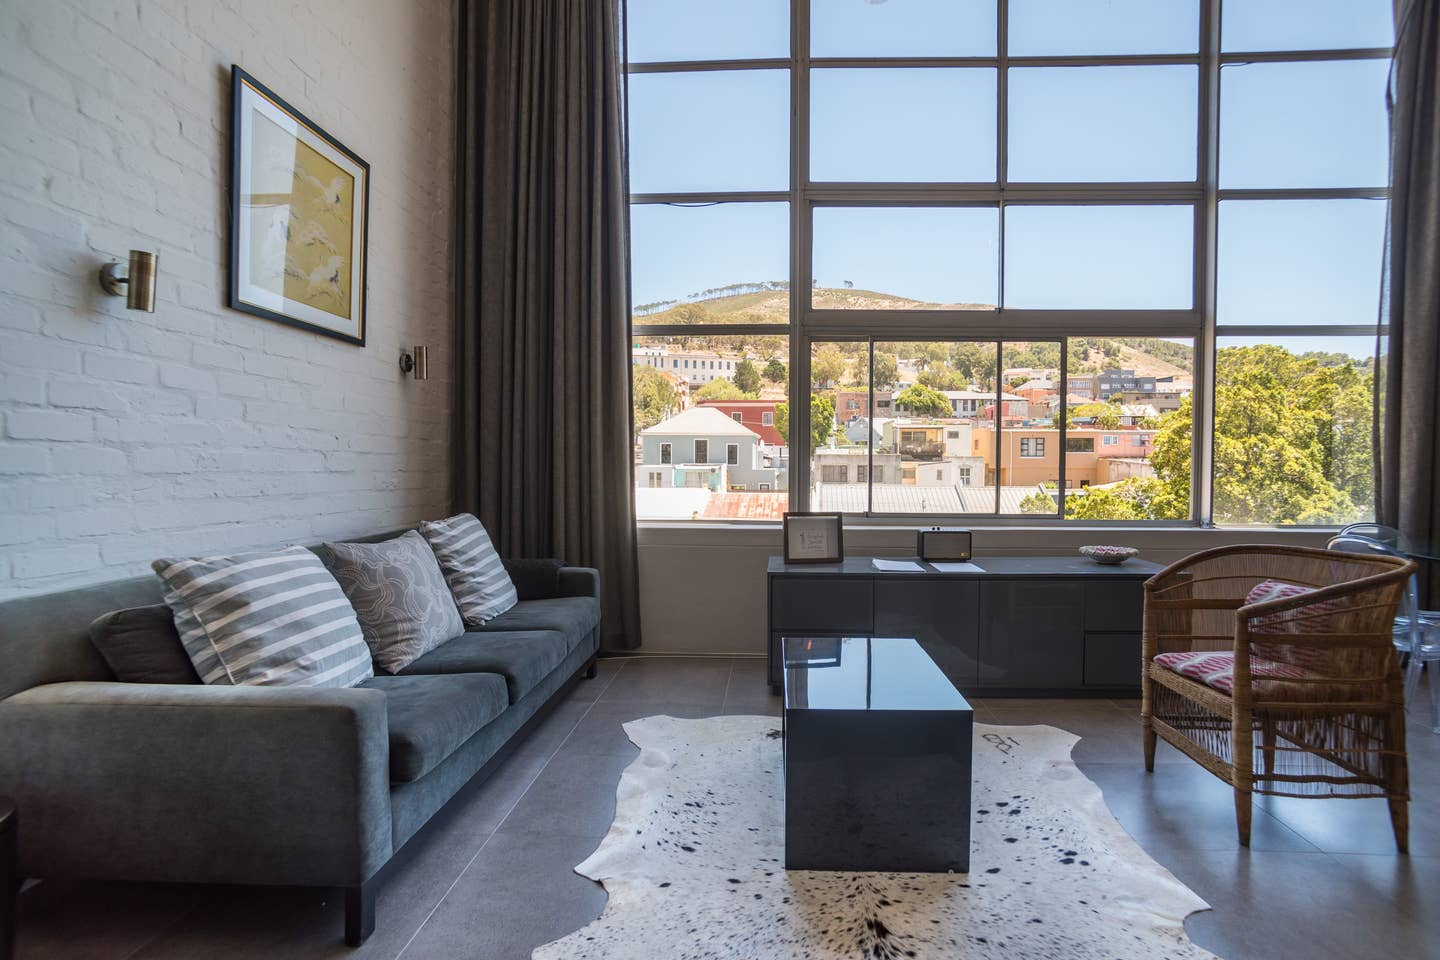 Best Cape Town Airbnbs 2020